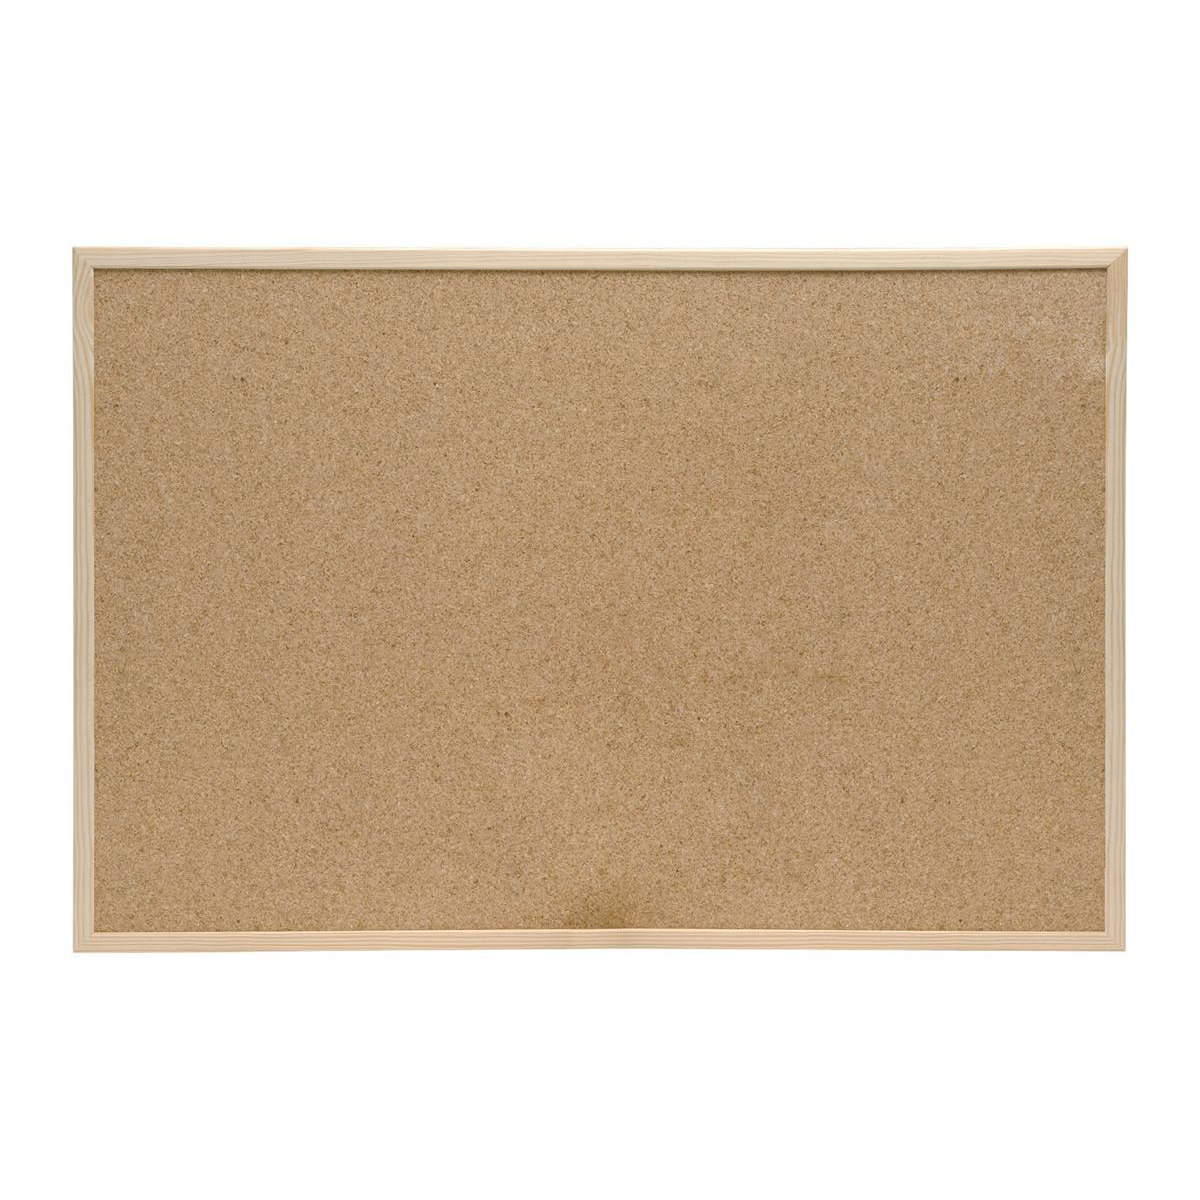 5 Star Office Noticeboard Cork with Pine Frame W600xH400mm